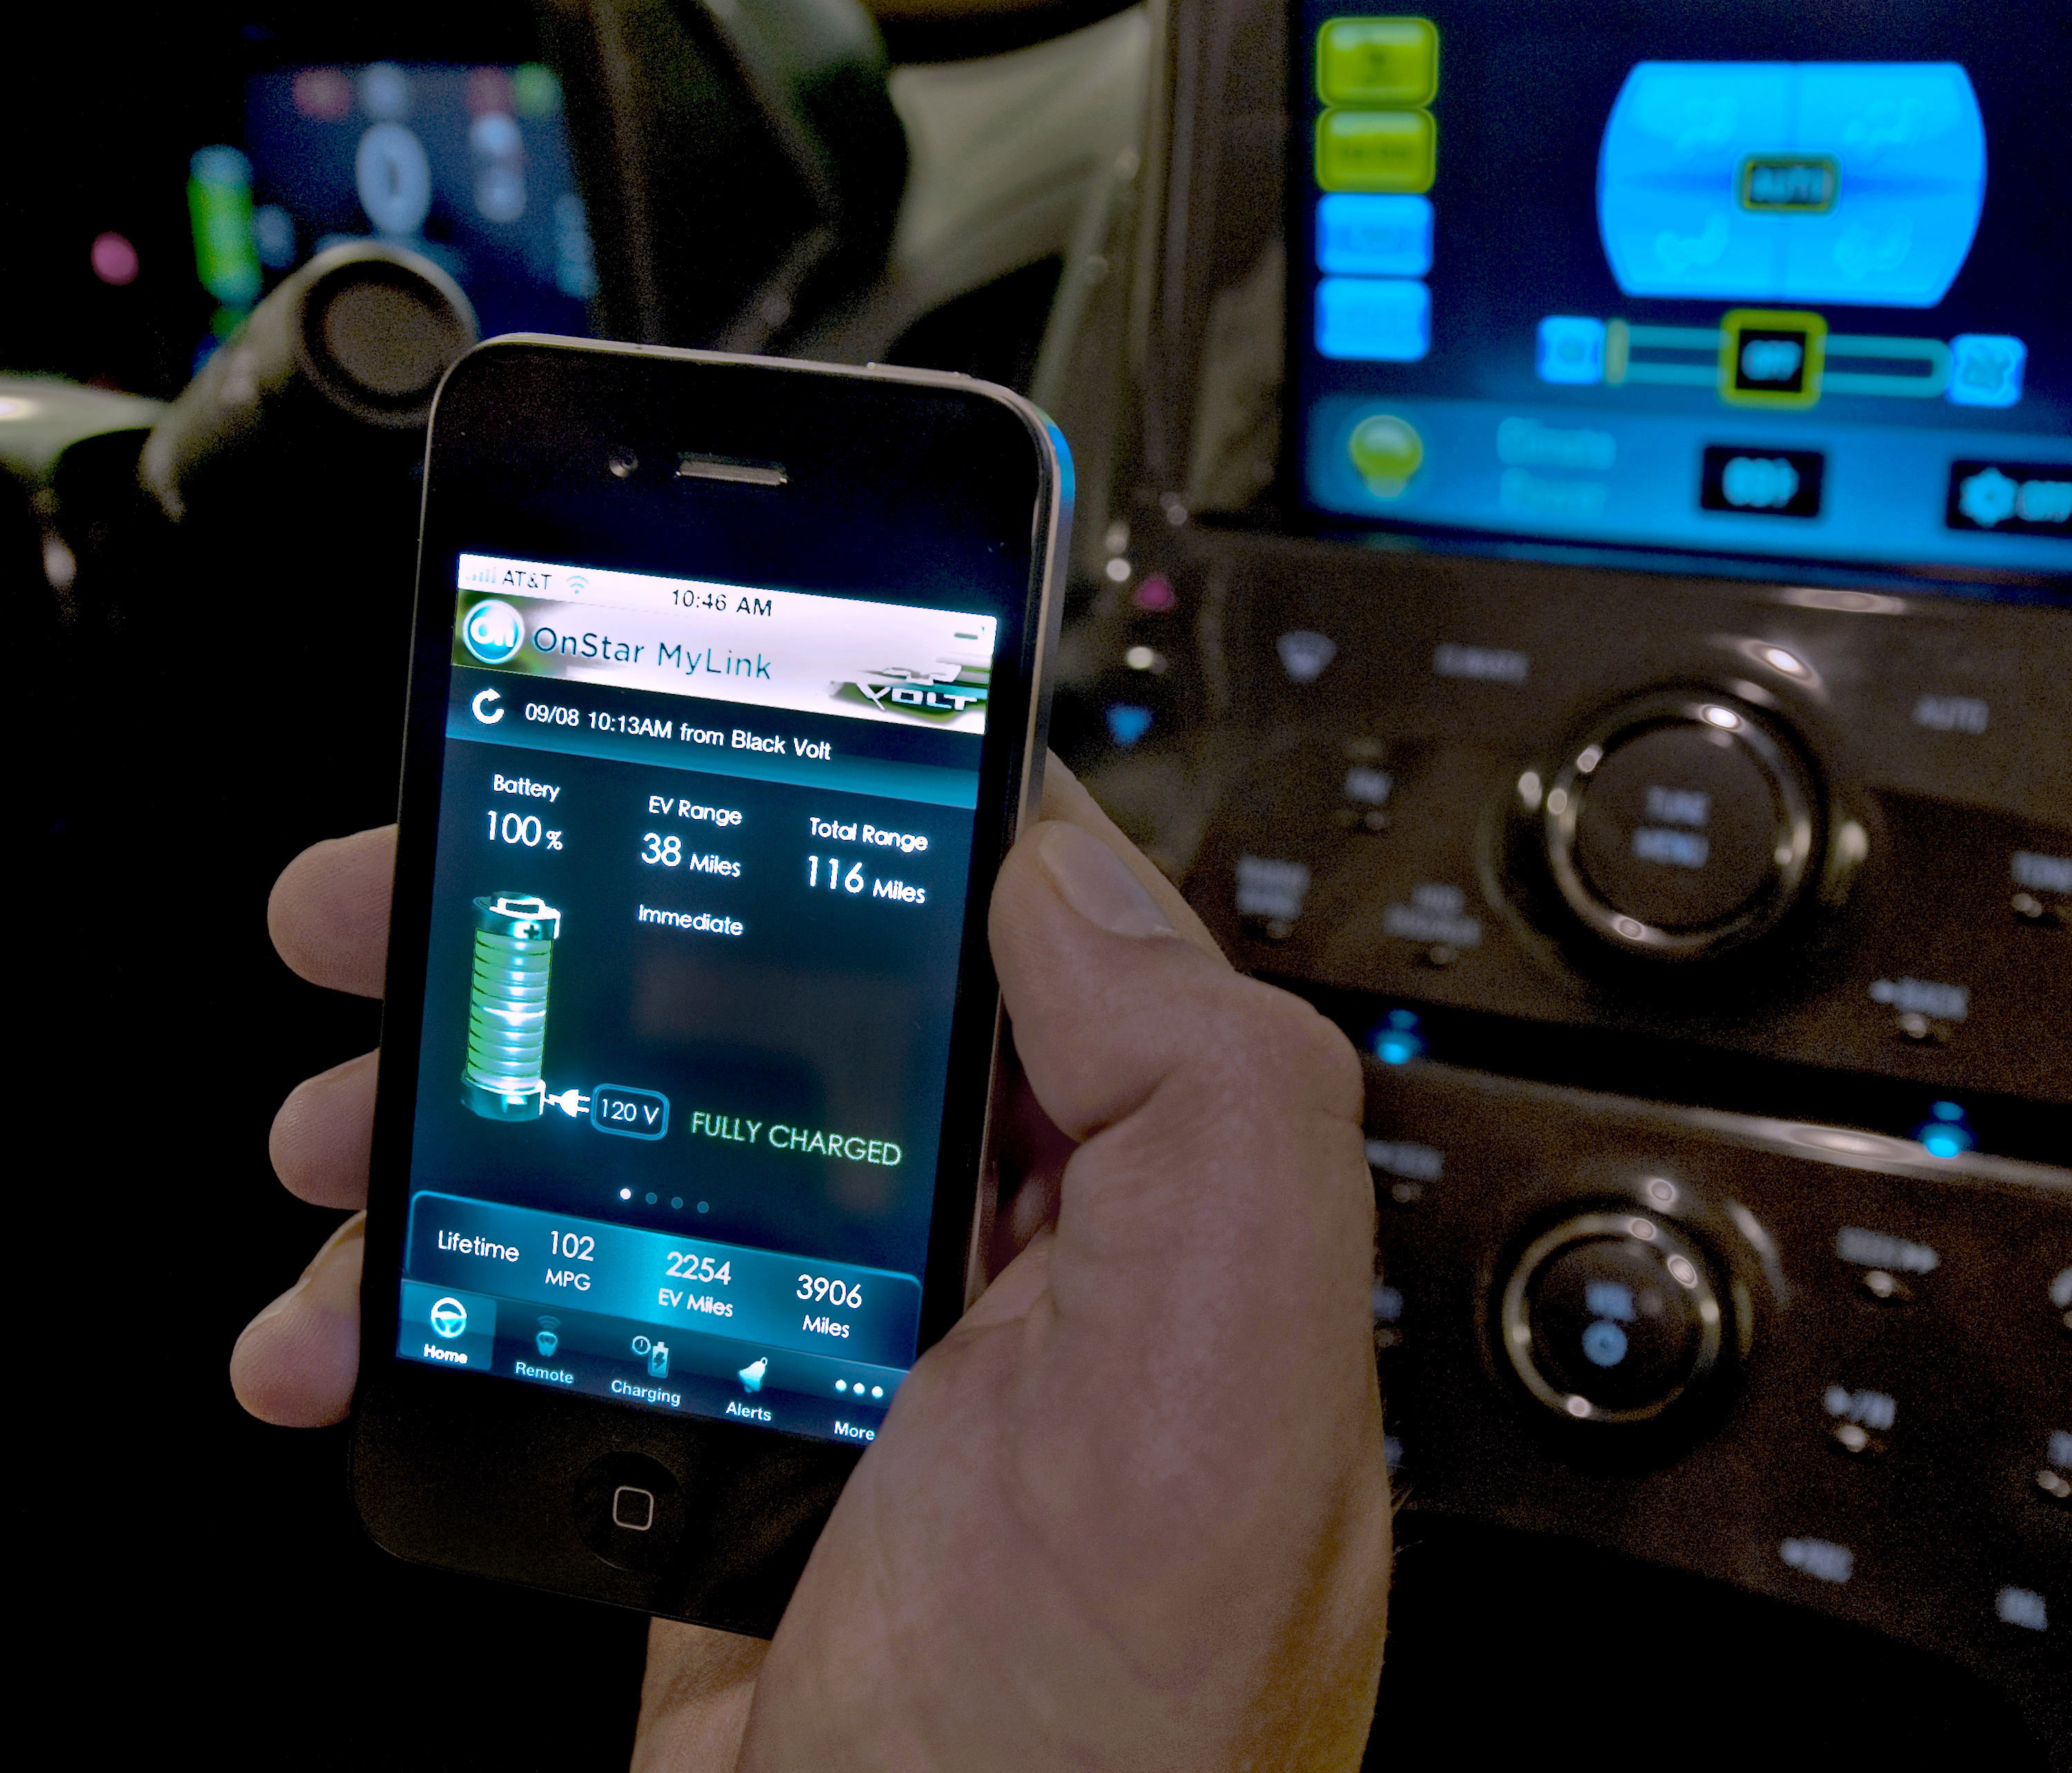 OnStar Rumors Are True: Upgrades Bring The Service Into